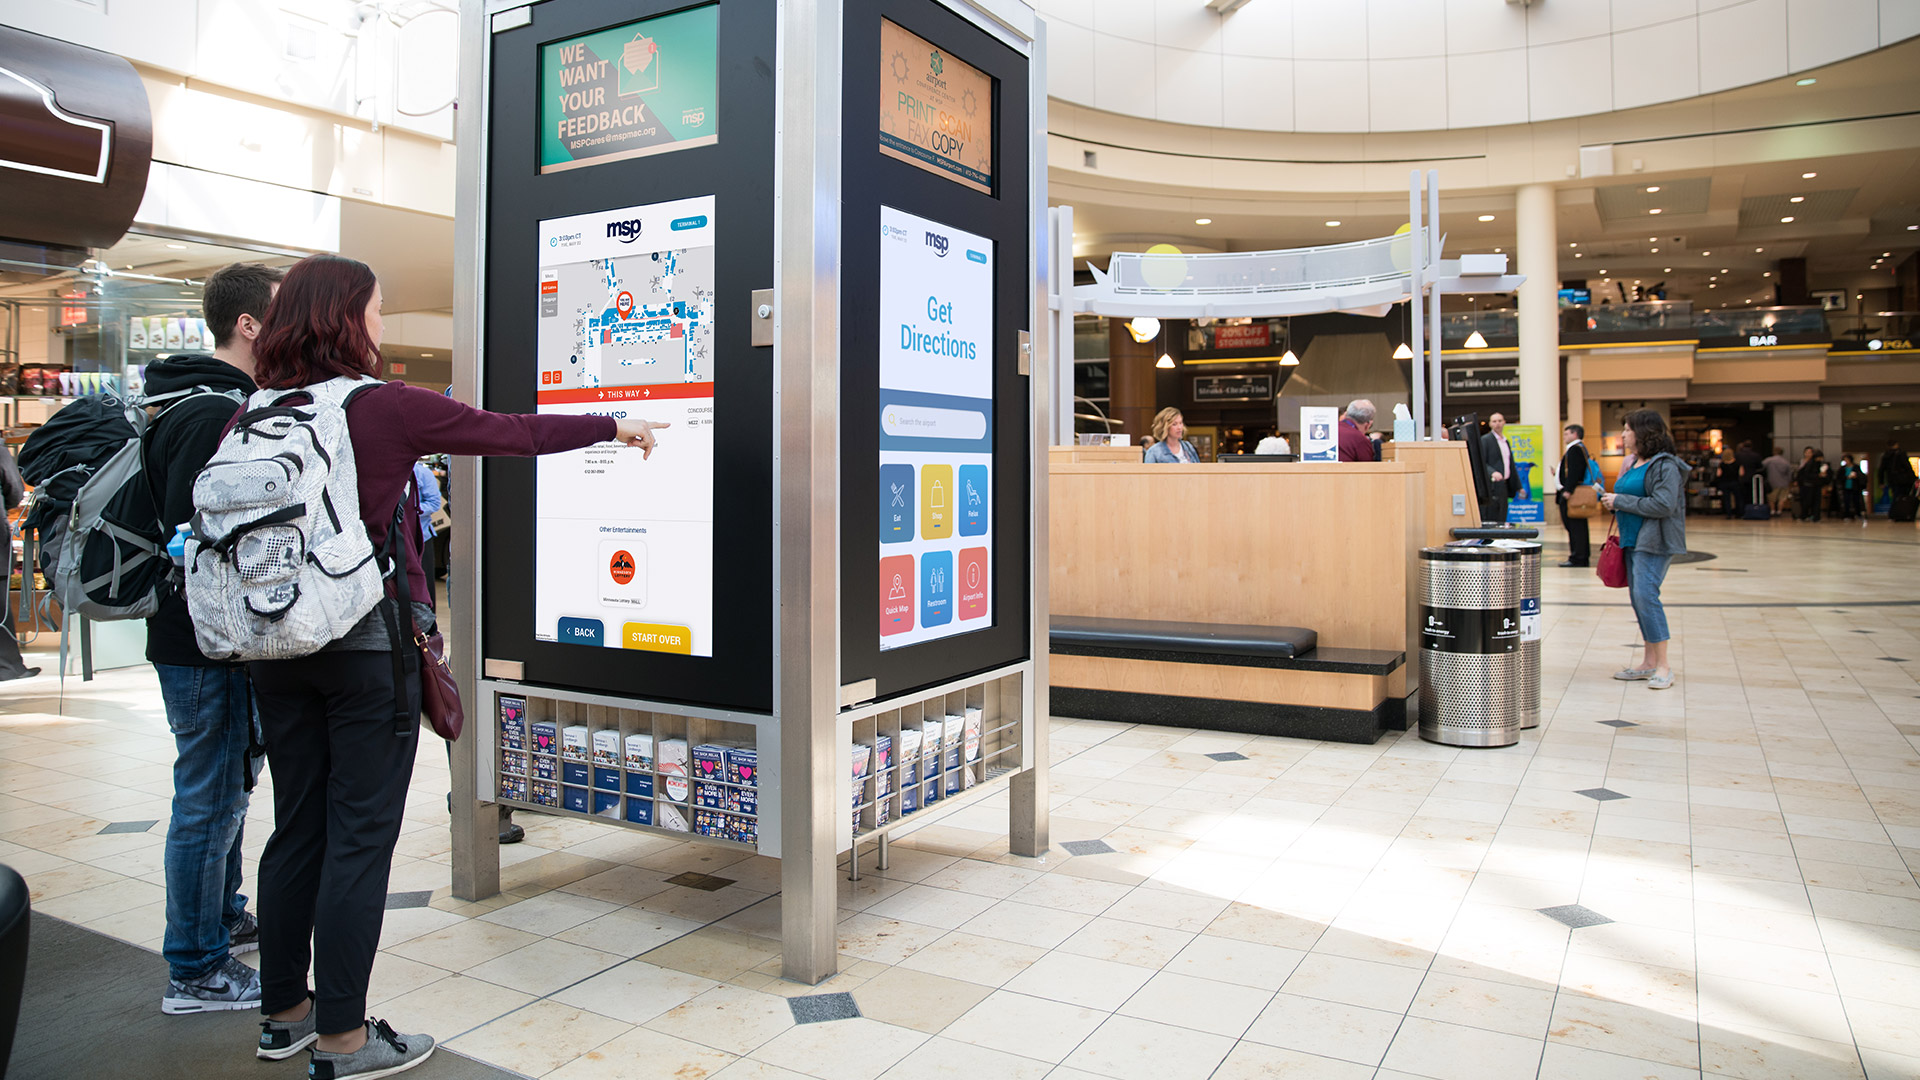 Interative Wayfinding Kiosk in the MSP Airport